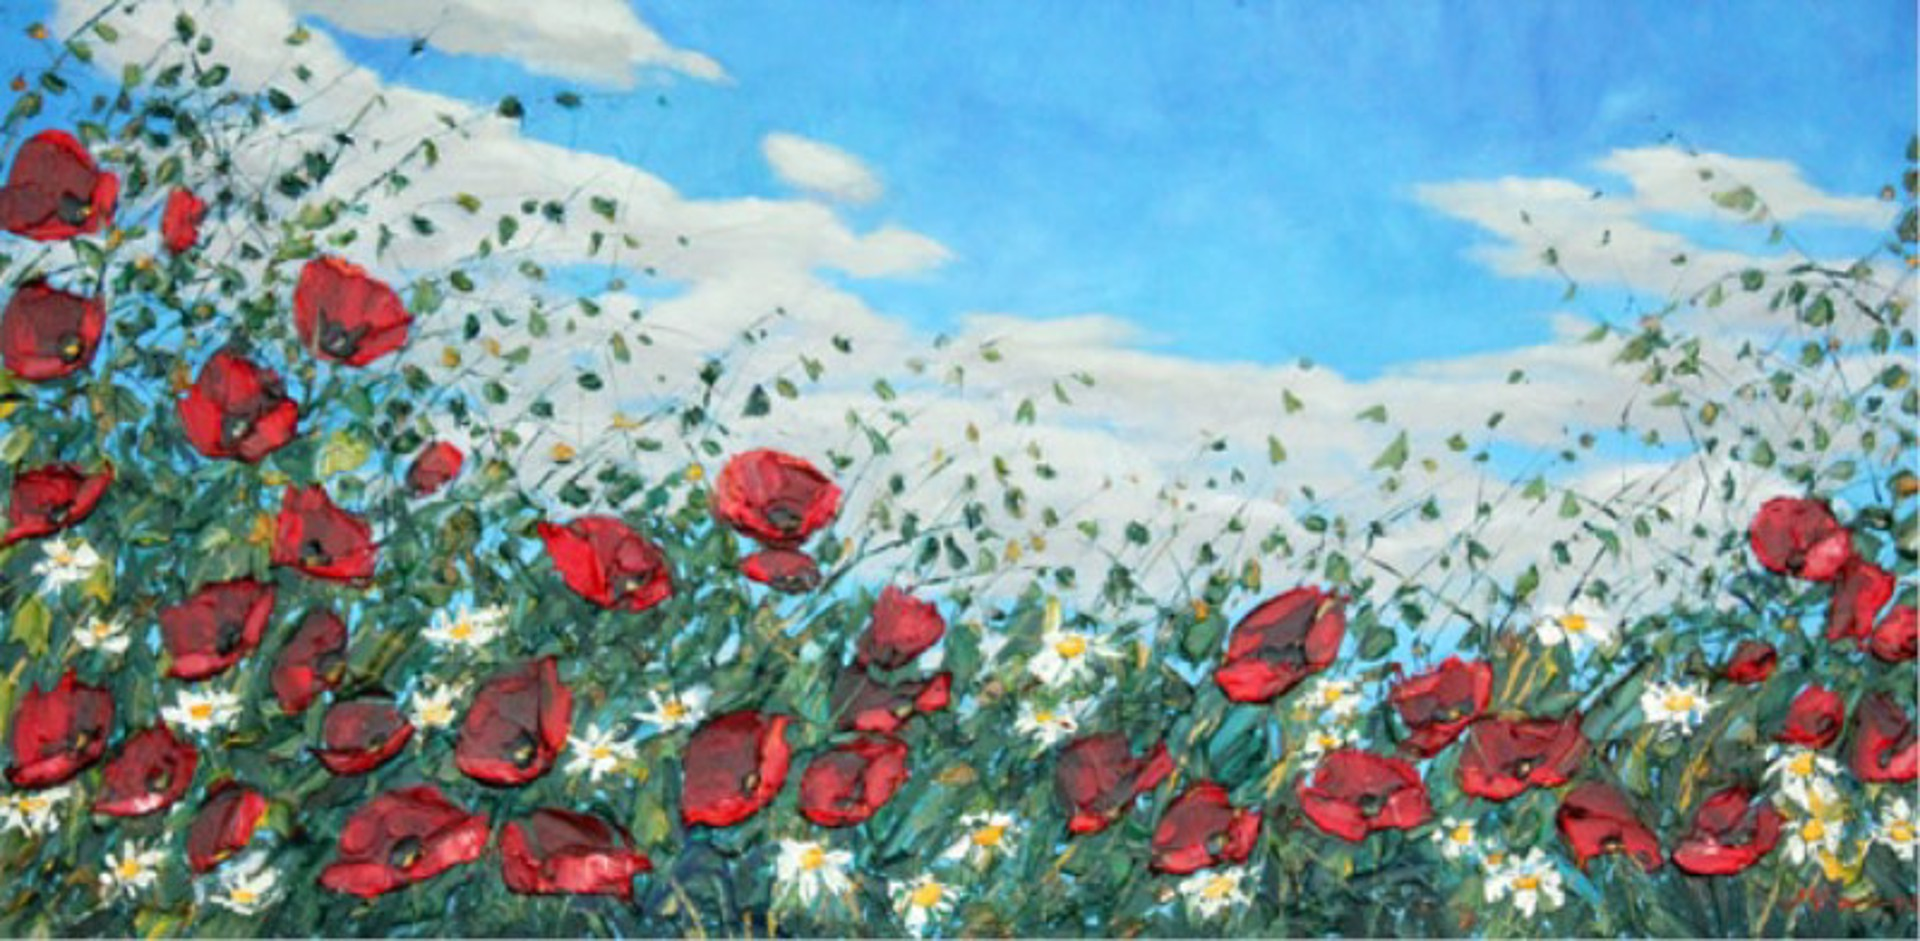 Poppies and Daisies by Jennifer Vranes